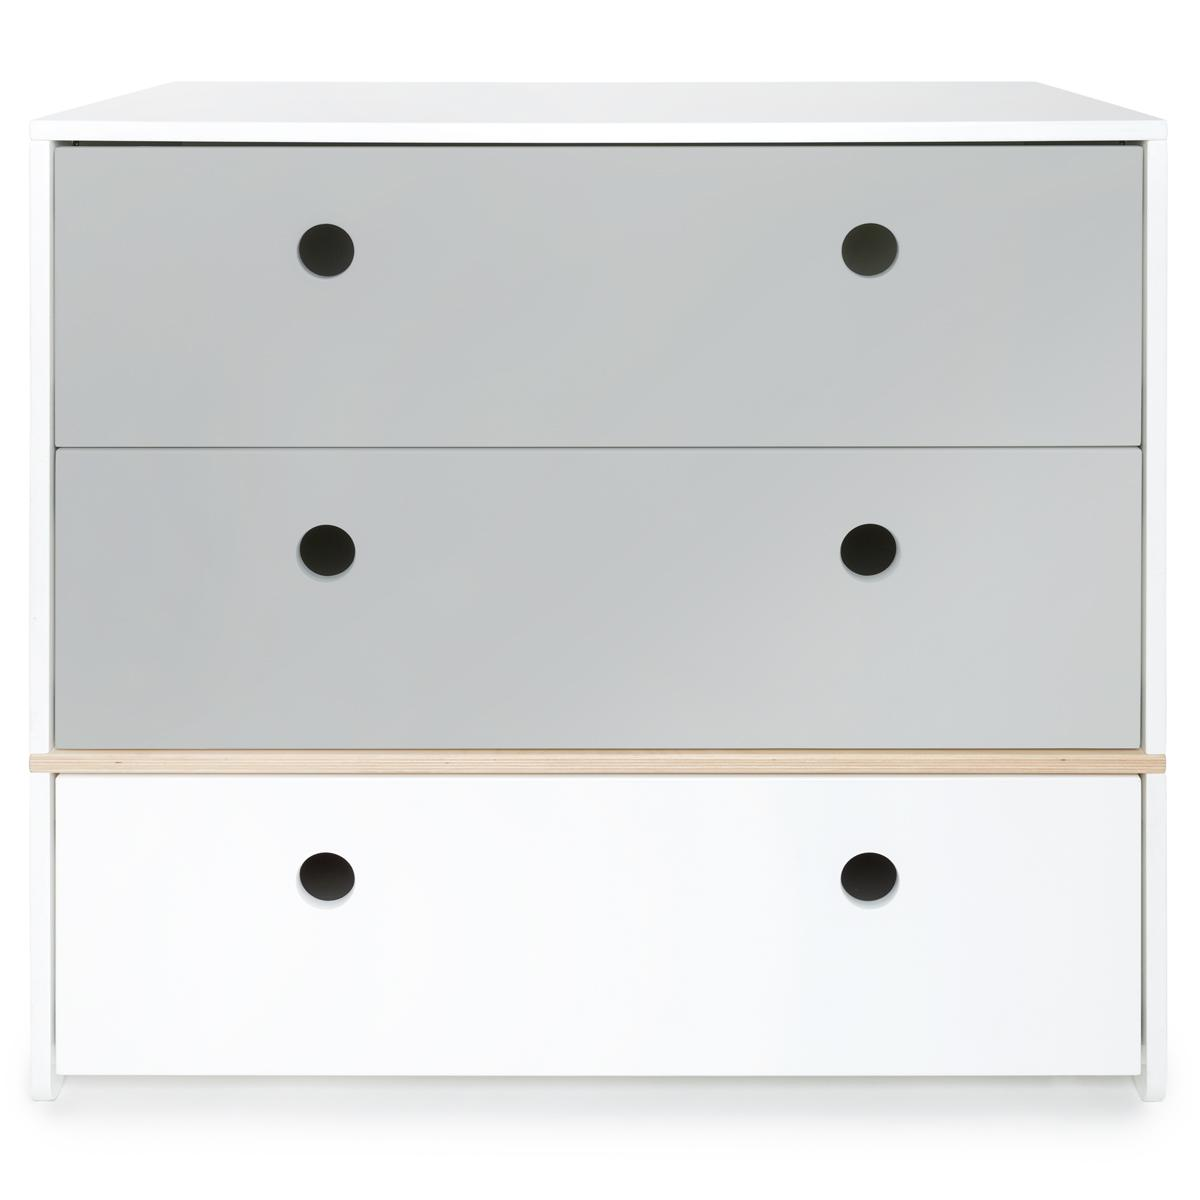 Commode COLORFLEX façades tiroirs pearl grey-pearl grey-white